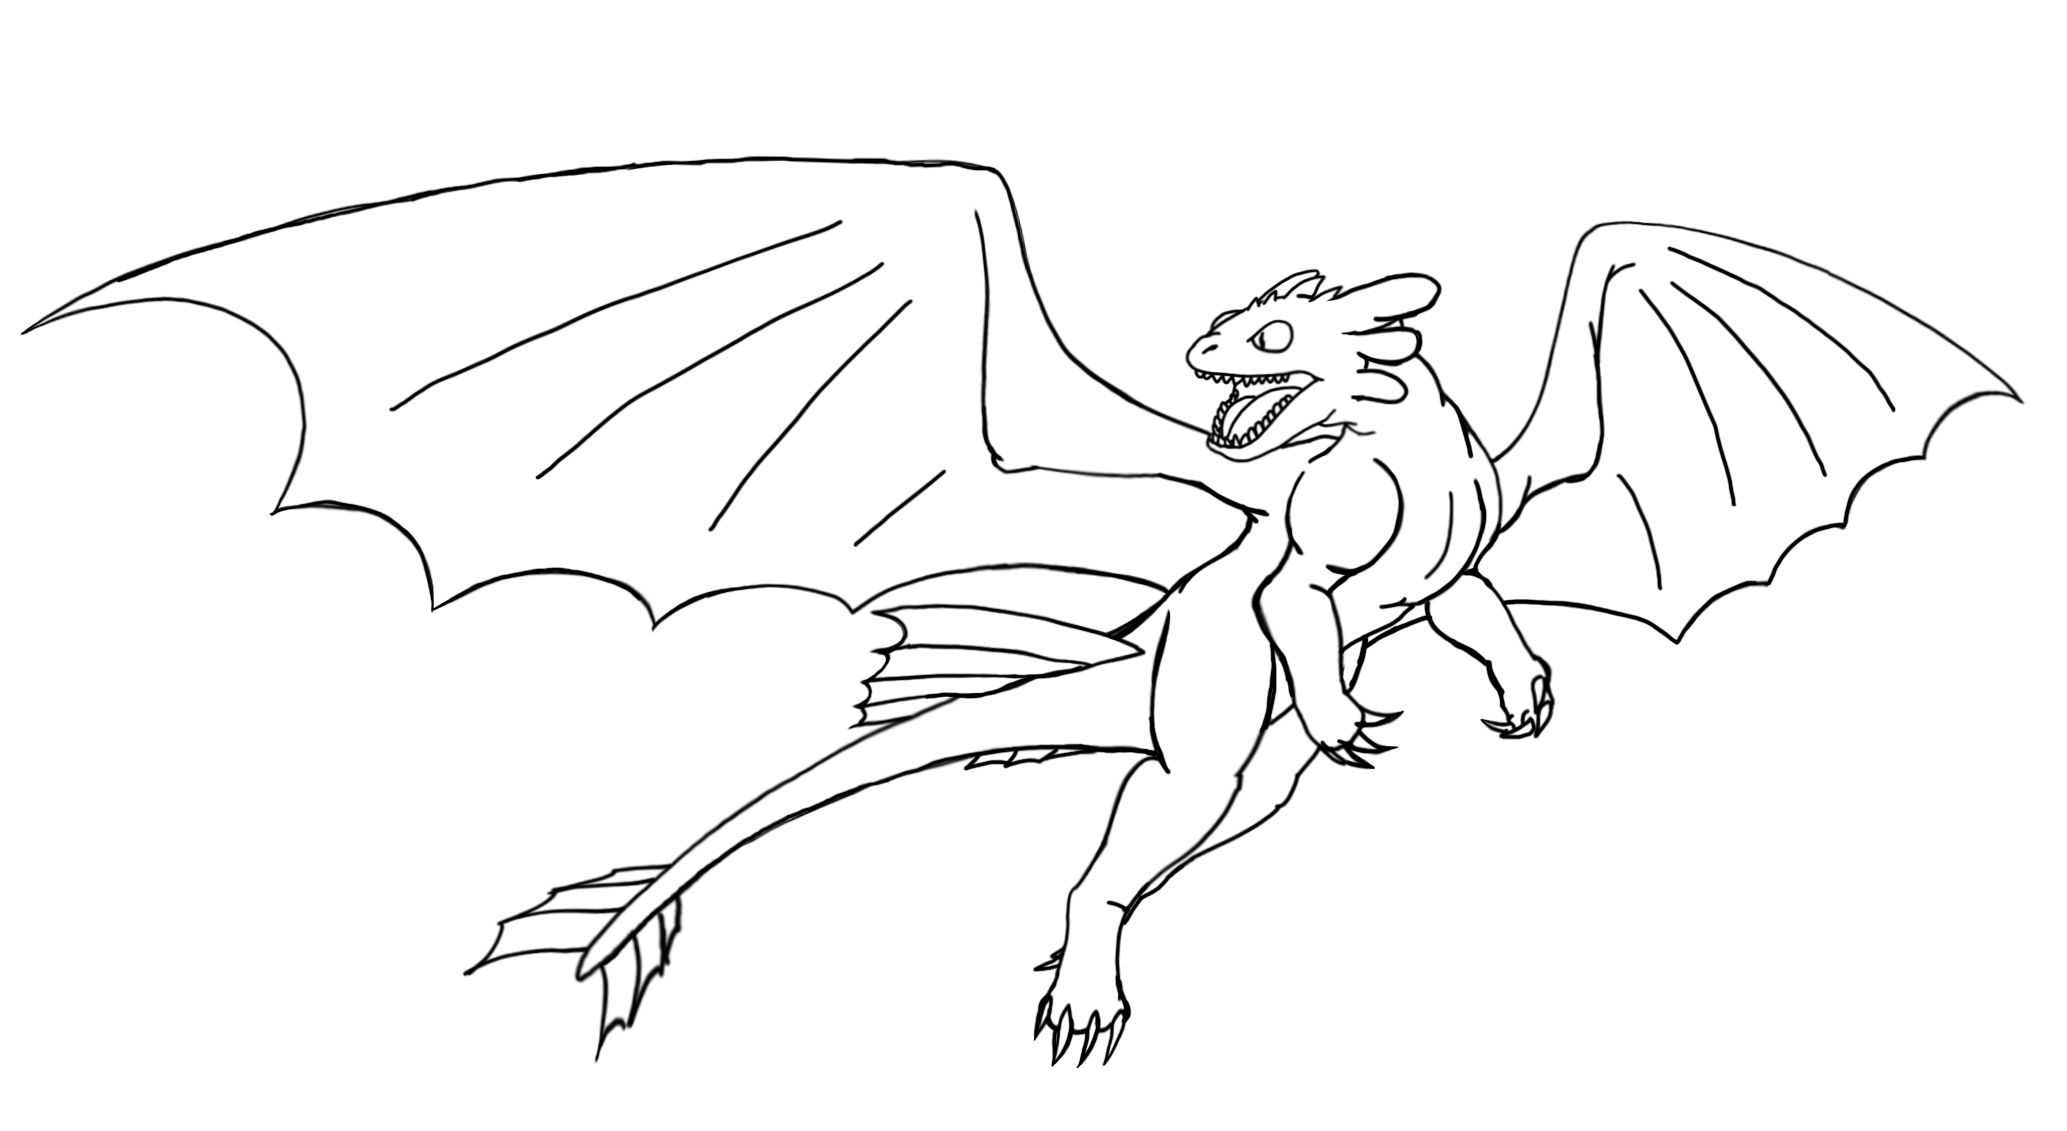 toothless dragon coloring pages toothless coloring pages best coloring pages for kids coloring toothless dragon pages